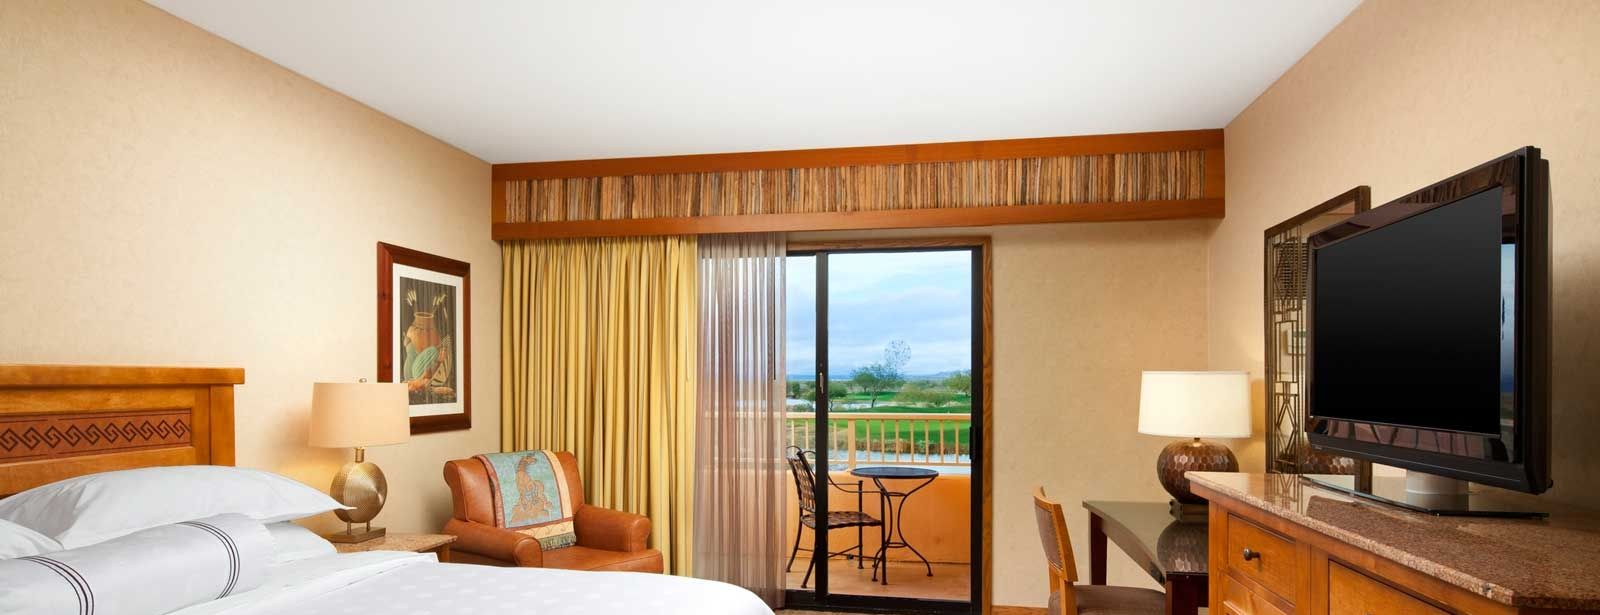 Sheraton Wild Horse Pass Resort & Spa - Deluxe Guestroom